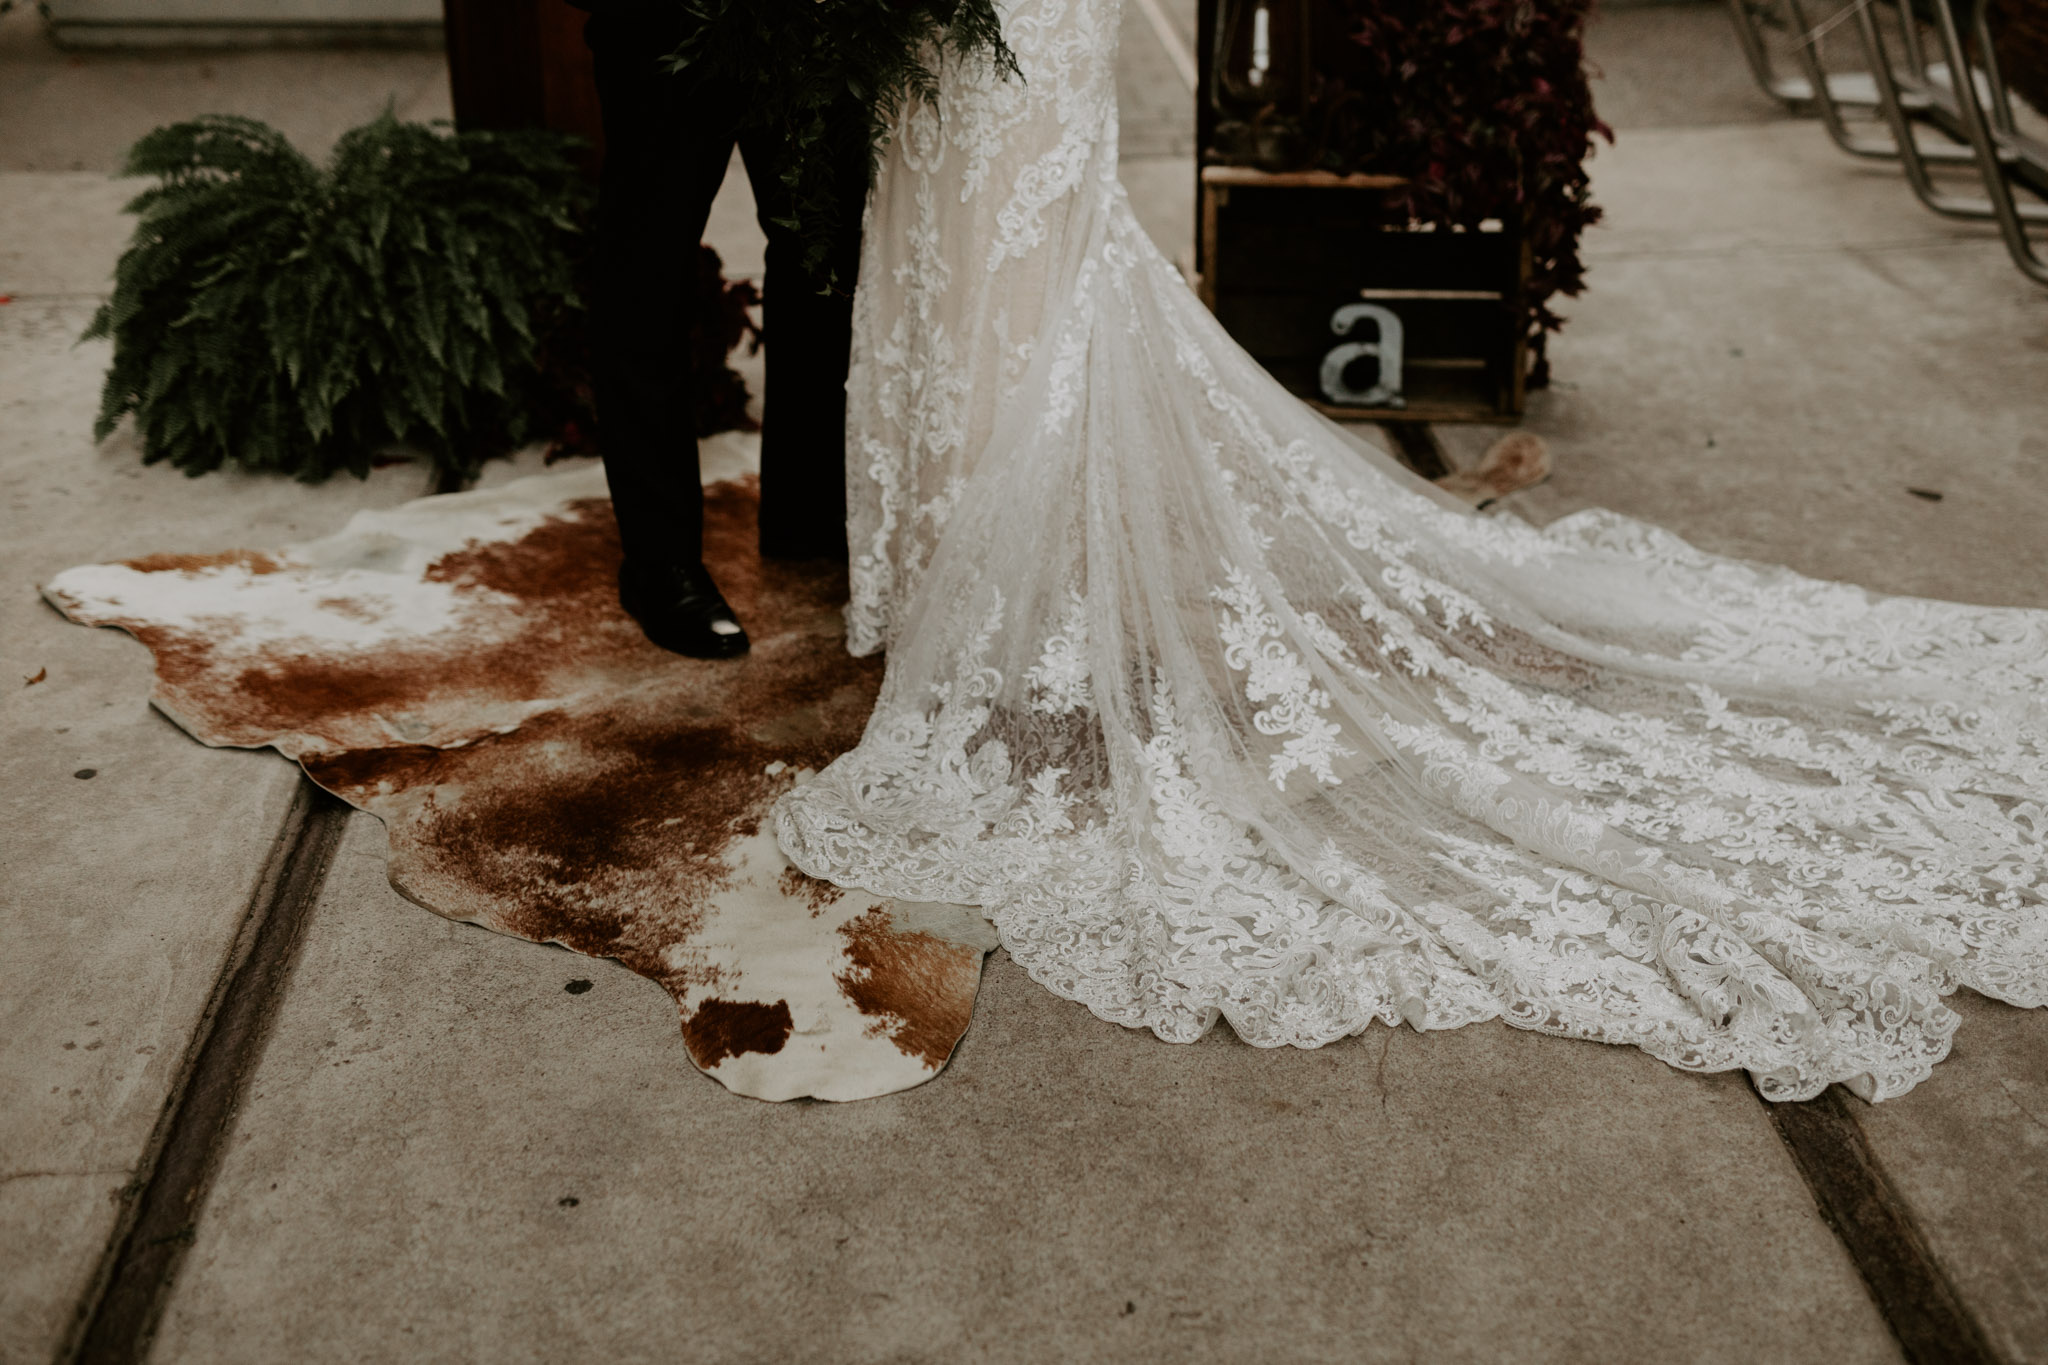 Caffino wedding - bride and groom'stand on hide rug at outdoor alter